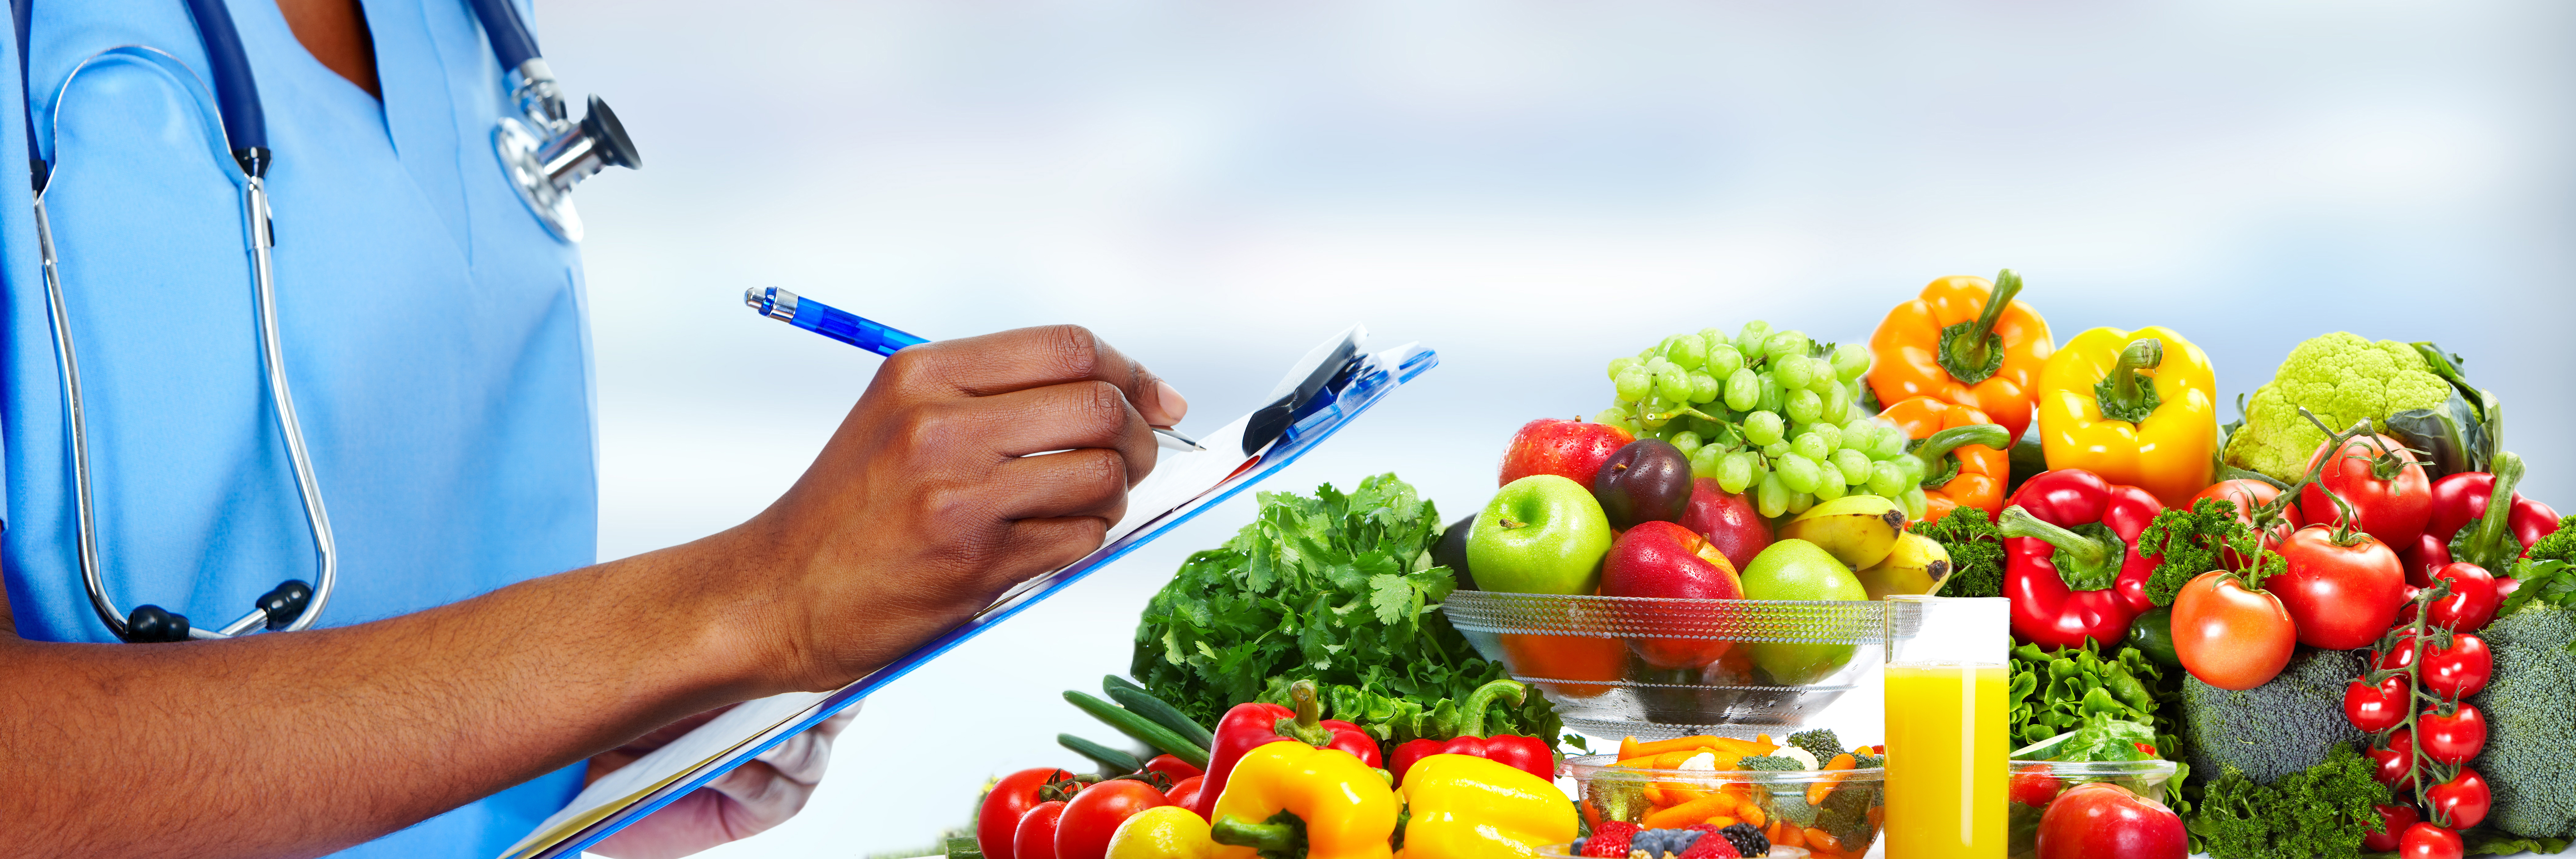 how to become a nutritional therapist